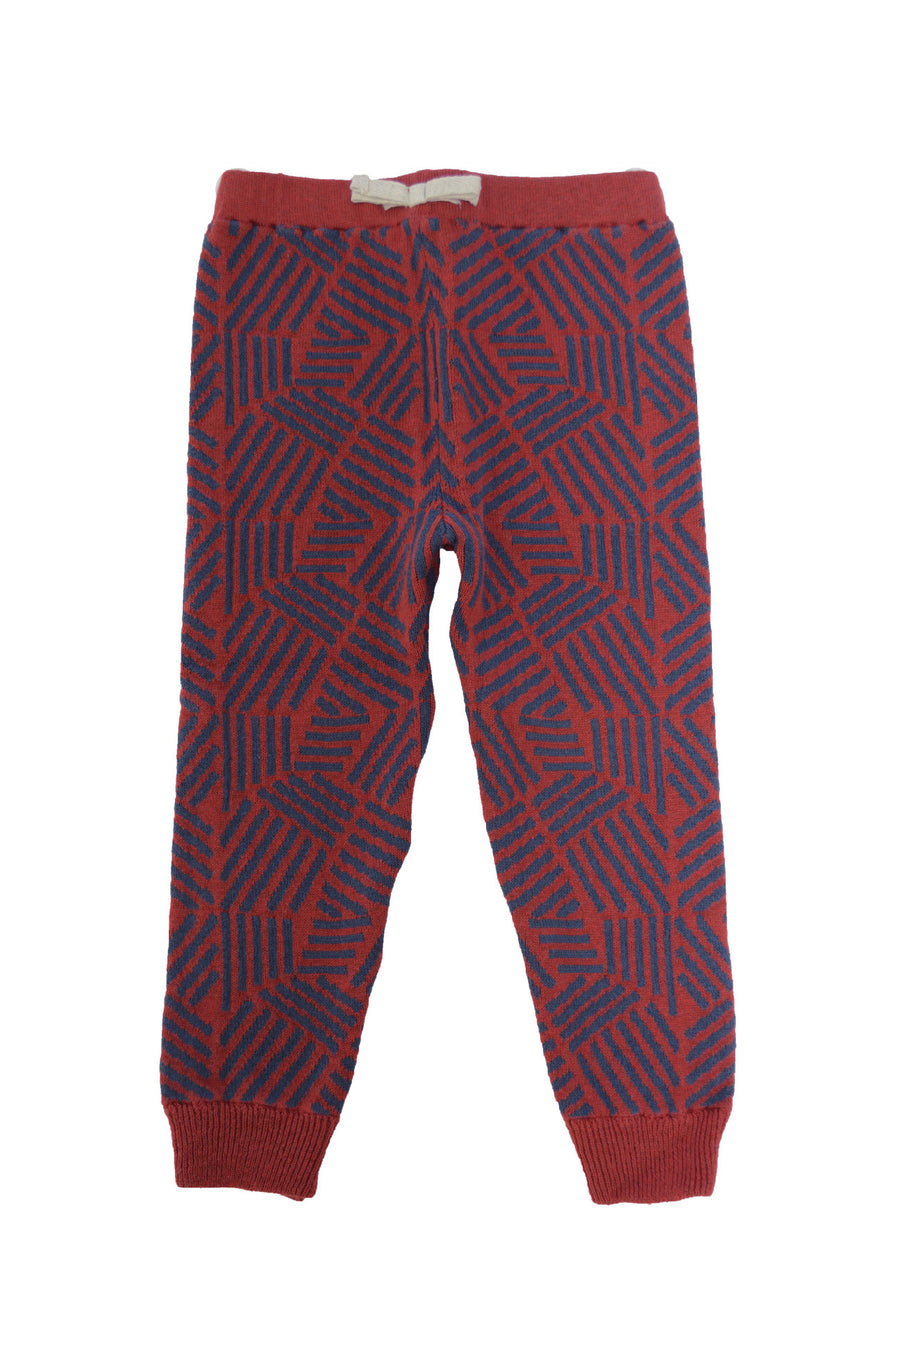 Brick Dash Sweatpant